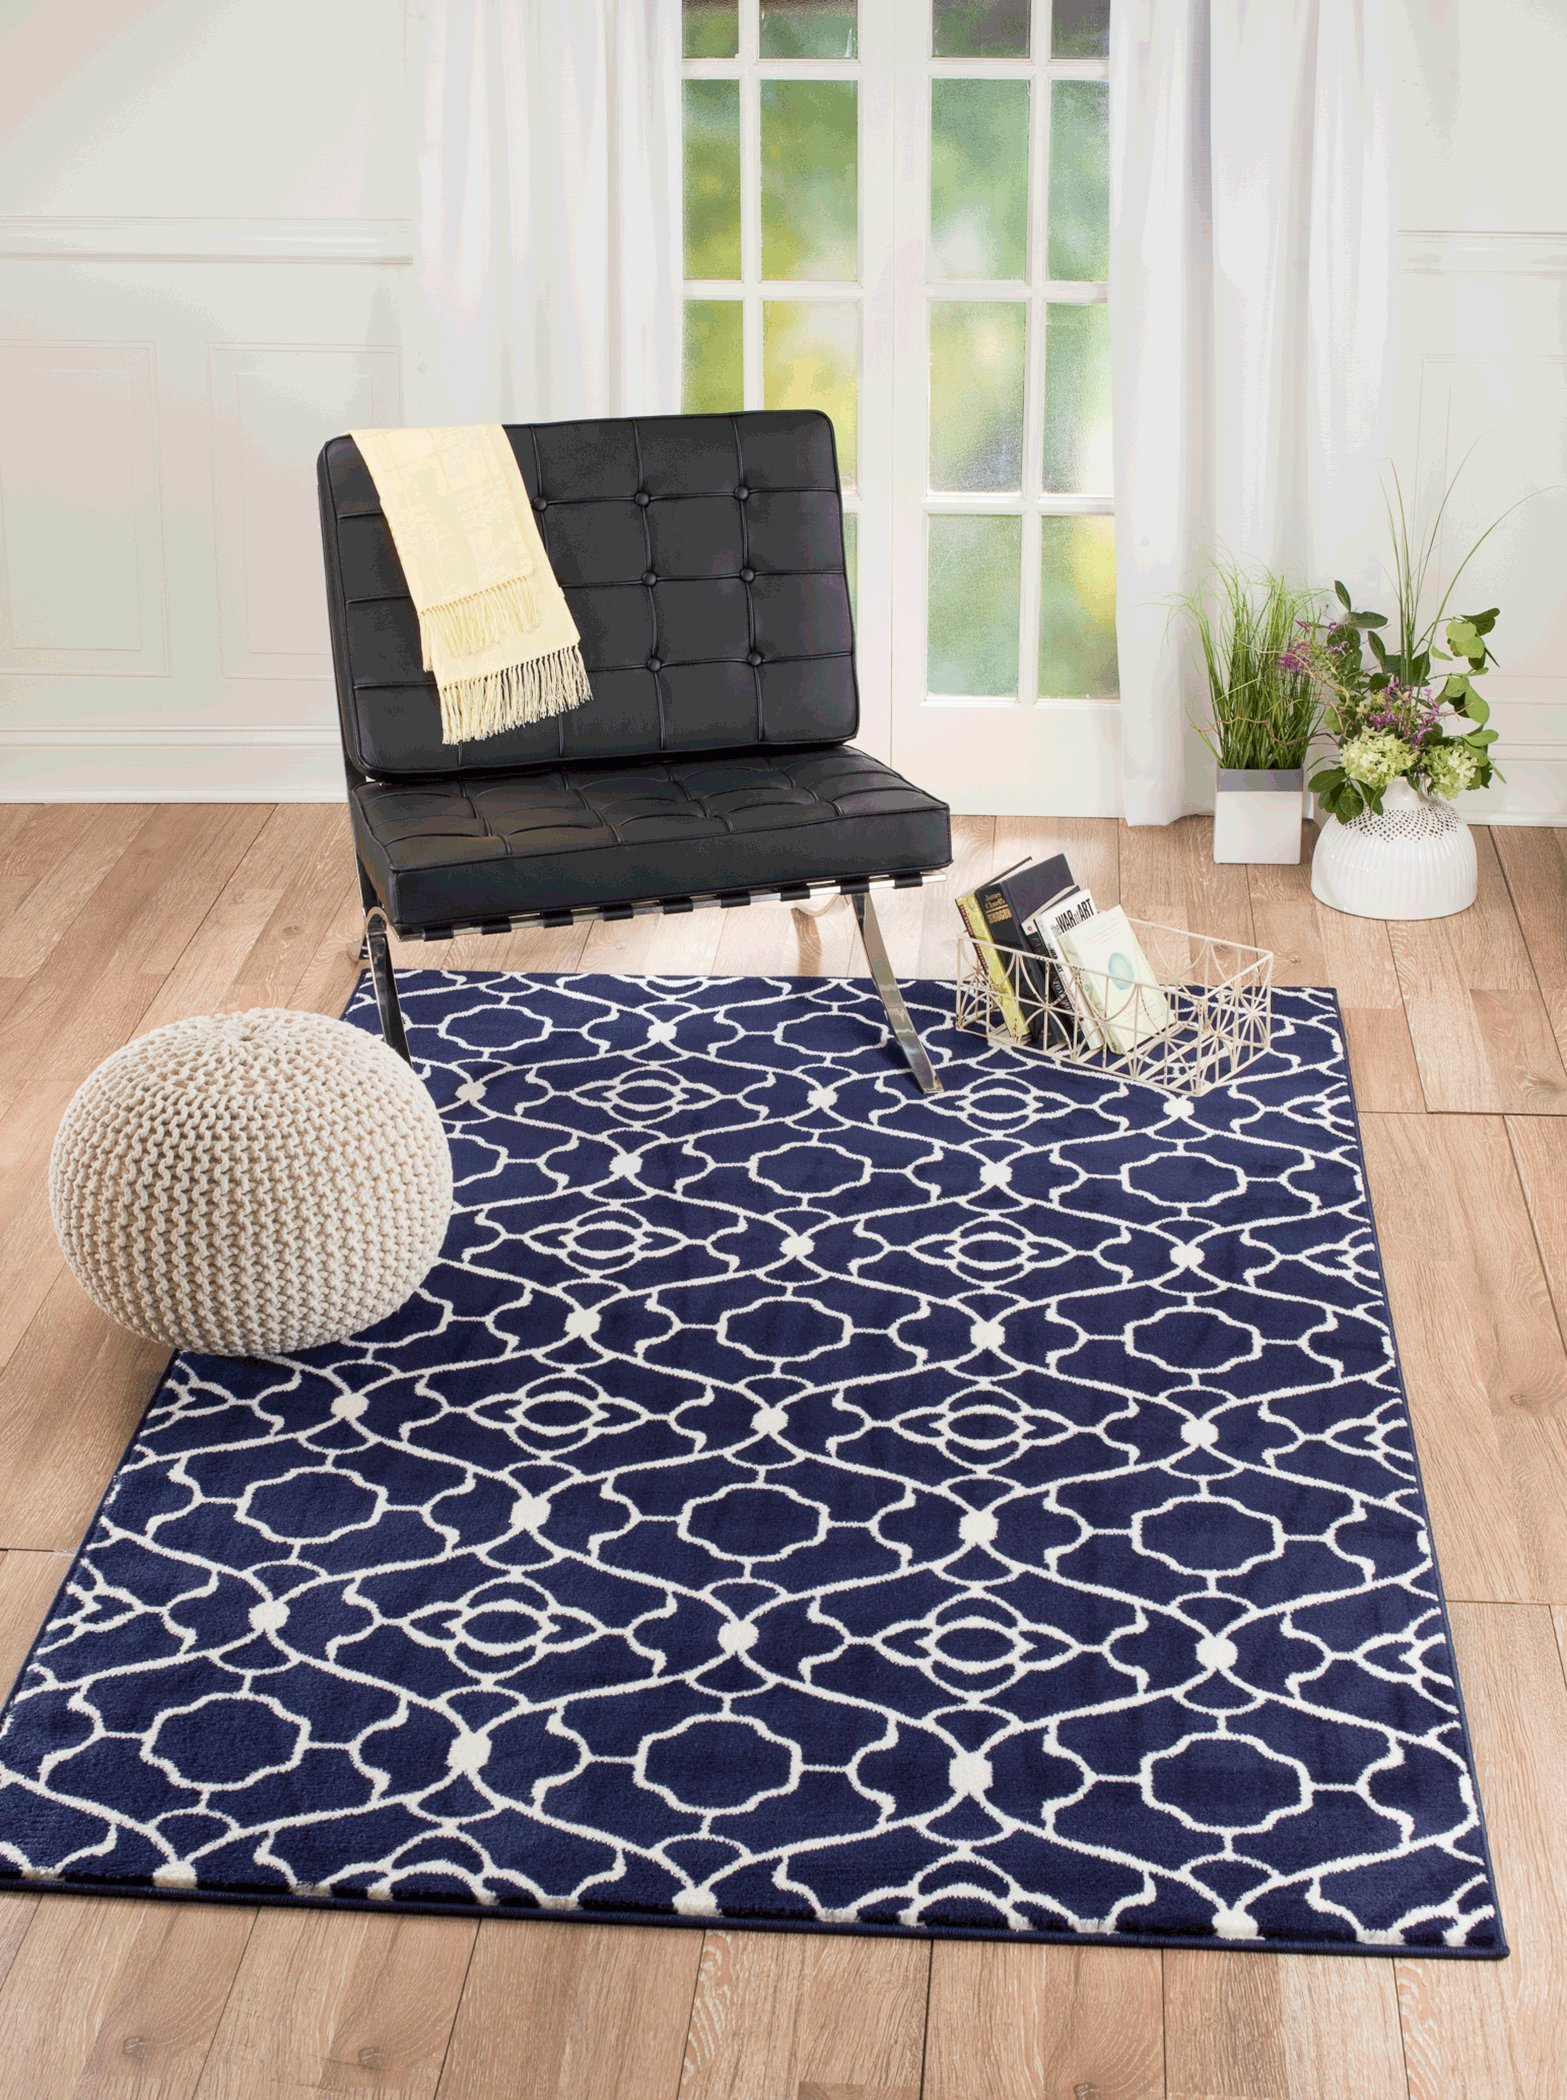 "NEW Summit Elite S 67 Navy Blue White Trellis Garden modern abstract Area Rug (2x3 doormat Actual is 22""x35"") - Easy to clean rugs Blended yarn pile rug Machine made rugs - living-room-soft-furnishings, living-room, area-rugs - 91xwDEaK82L -"